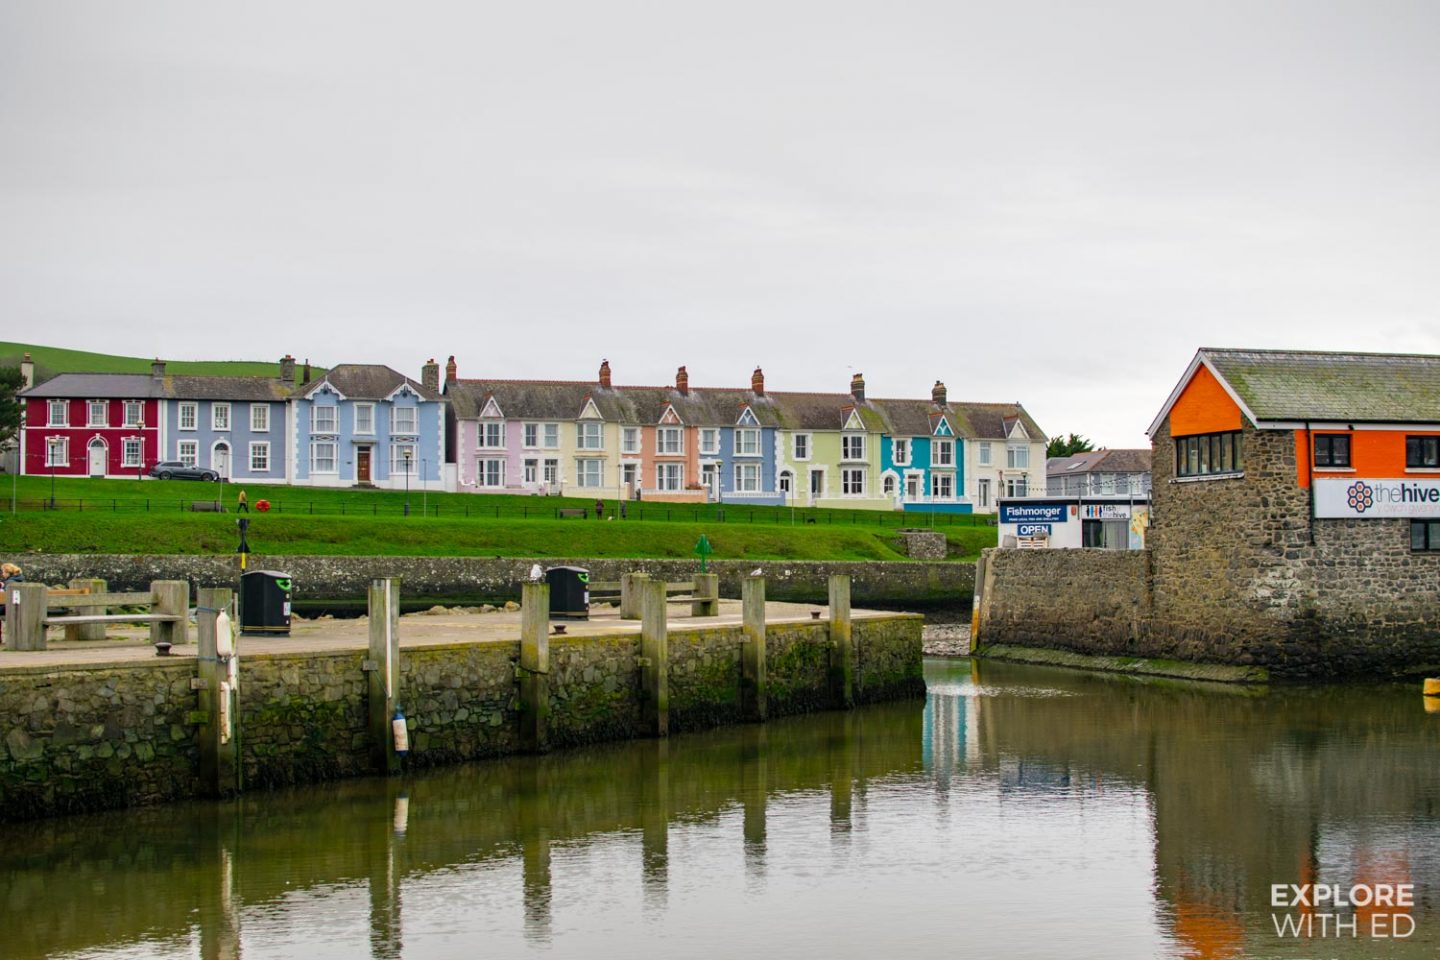 Aberaeron Harbour multi-coloured terraced houses and The Hive café